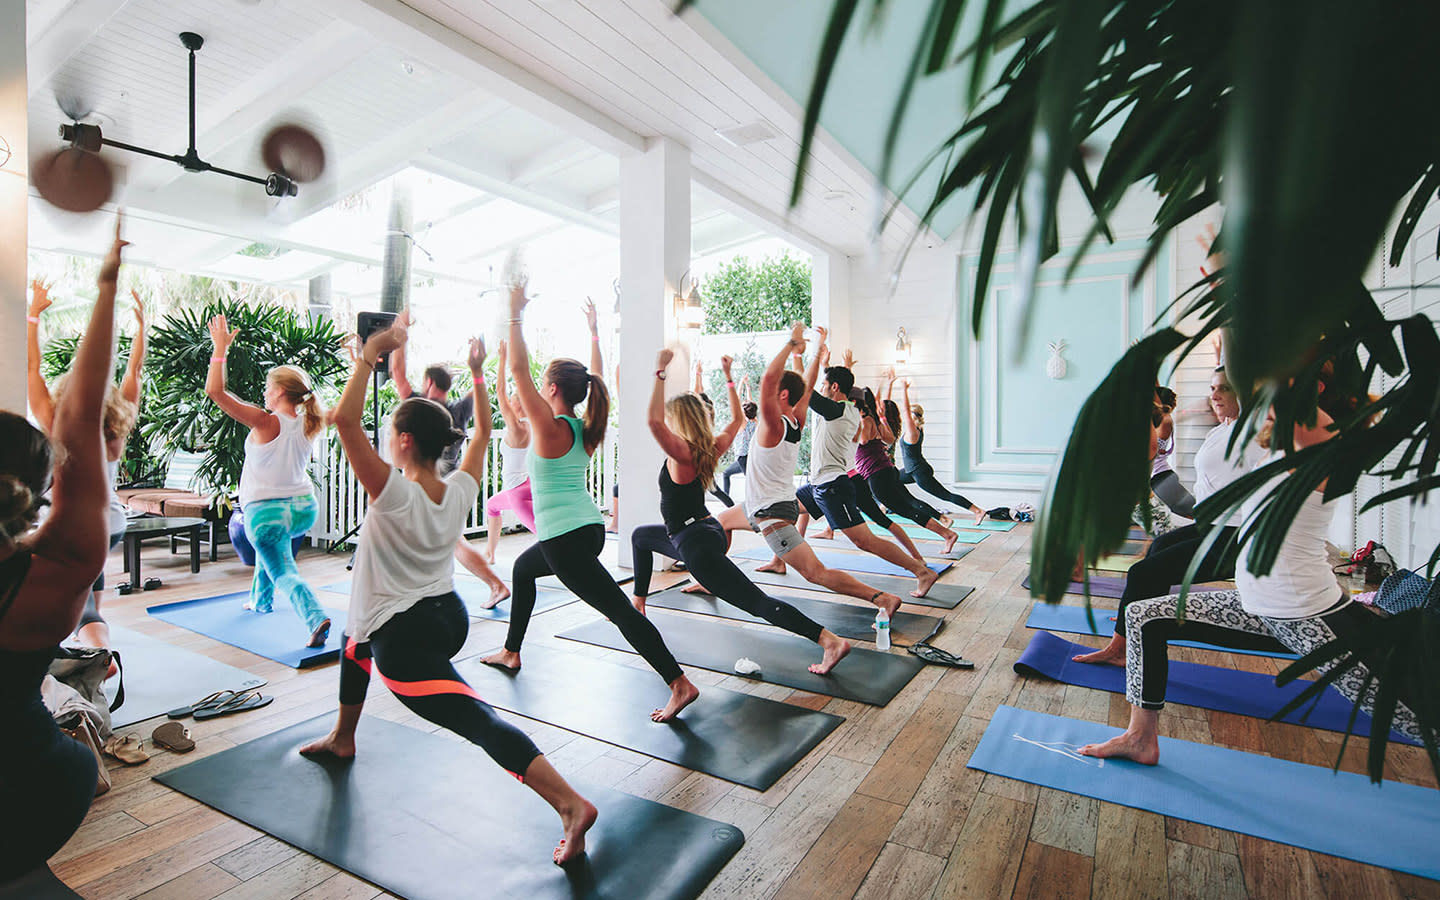 Yoga classes for all levels